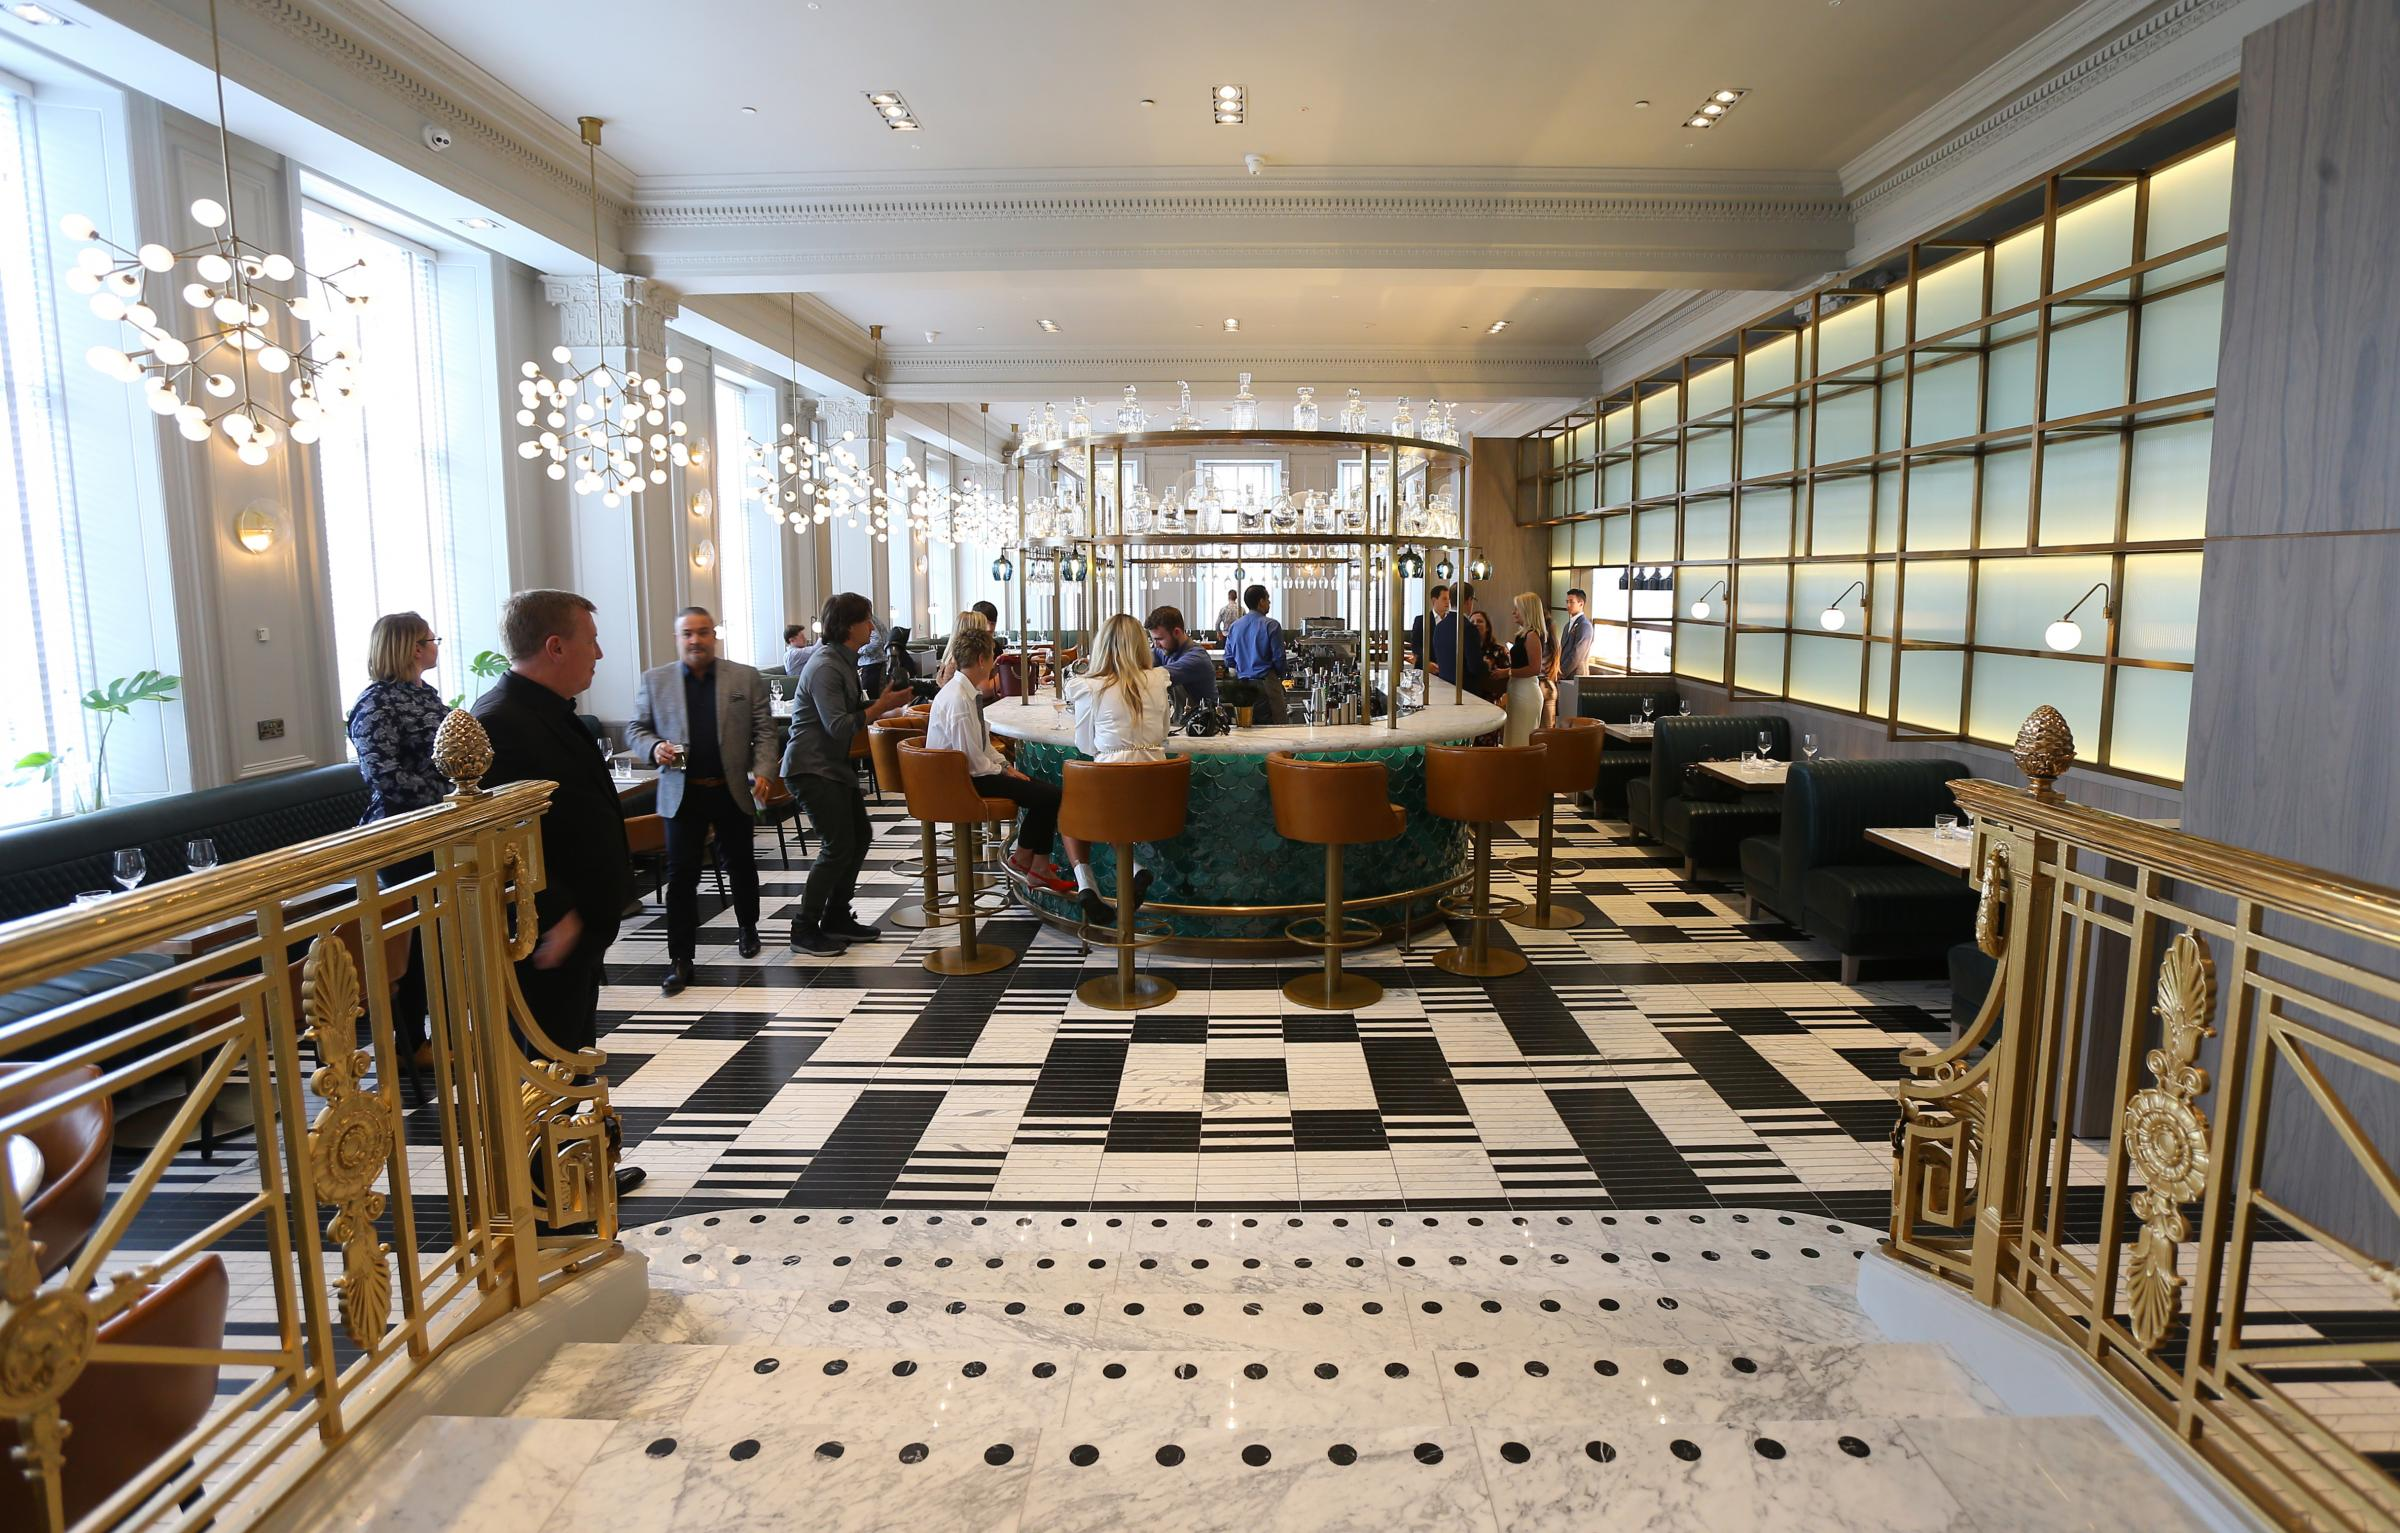 Inside the new Blythswood Hotel restaurant